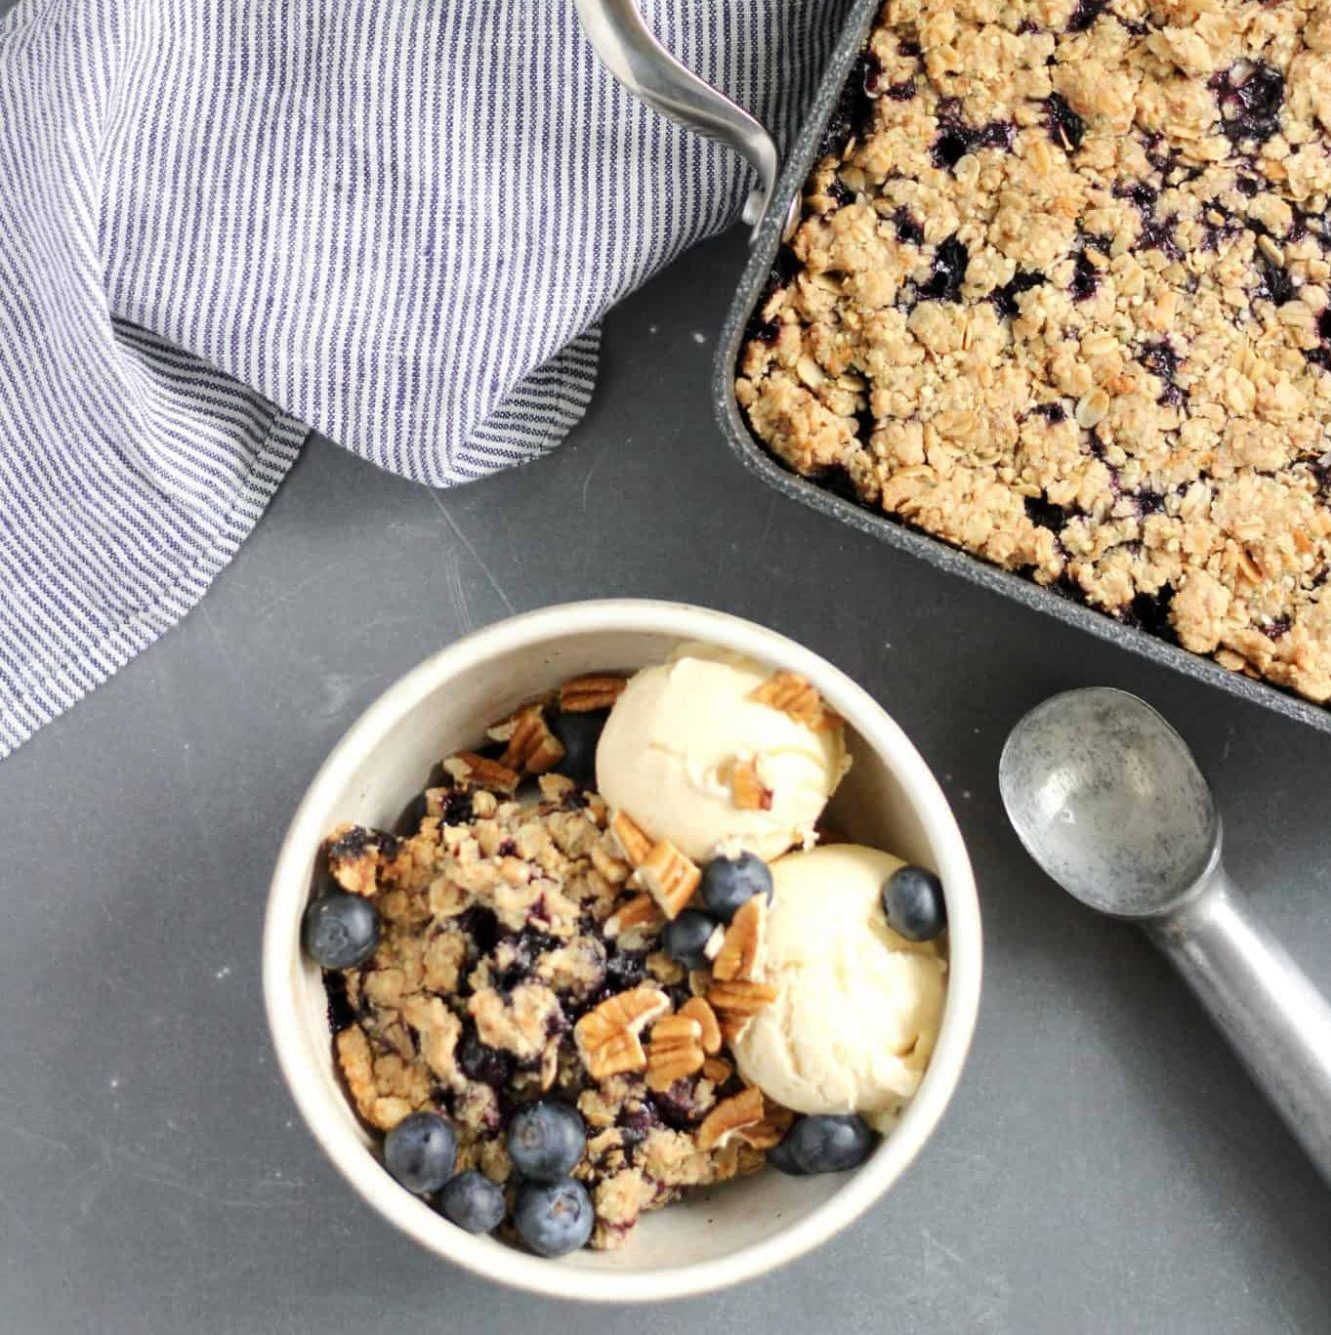 Blueberry Hemp Heart Crumble